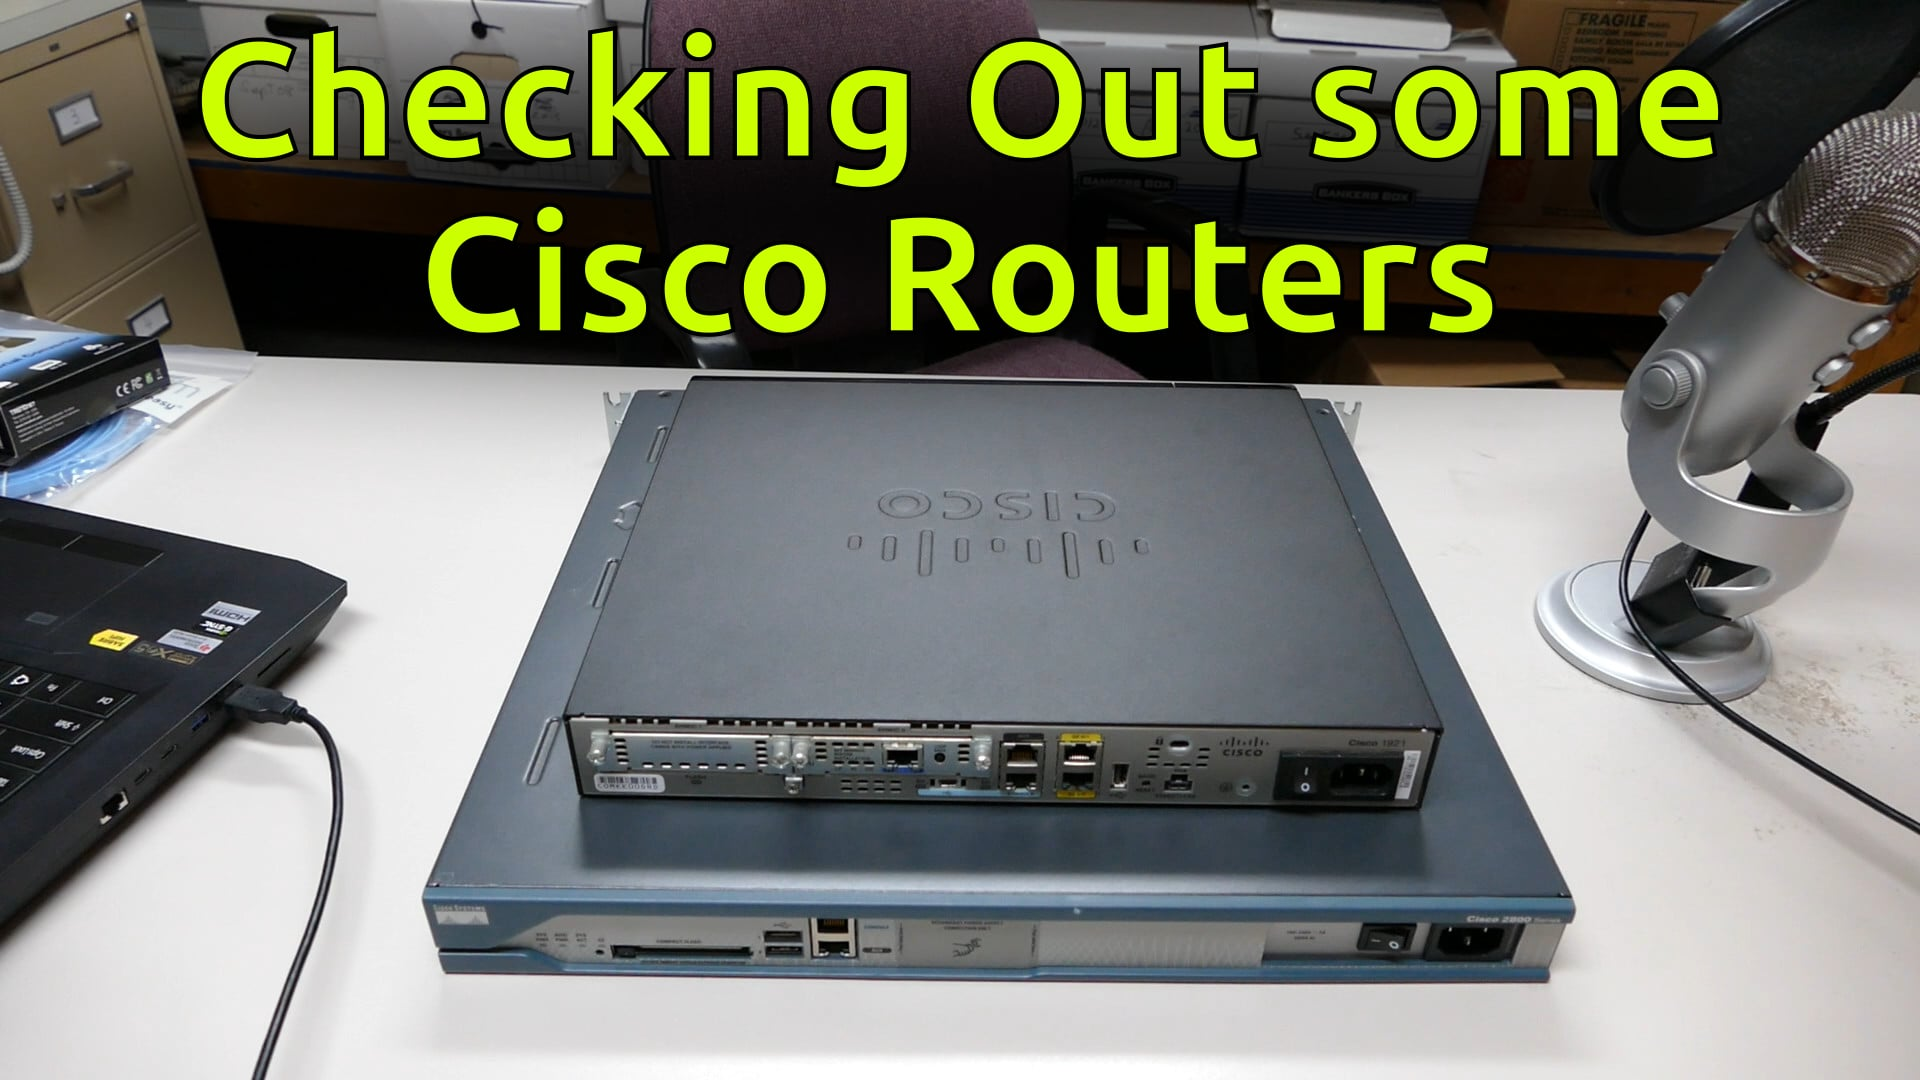 Checking Out some Cisco Routers